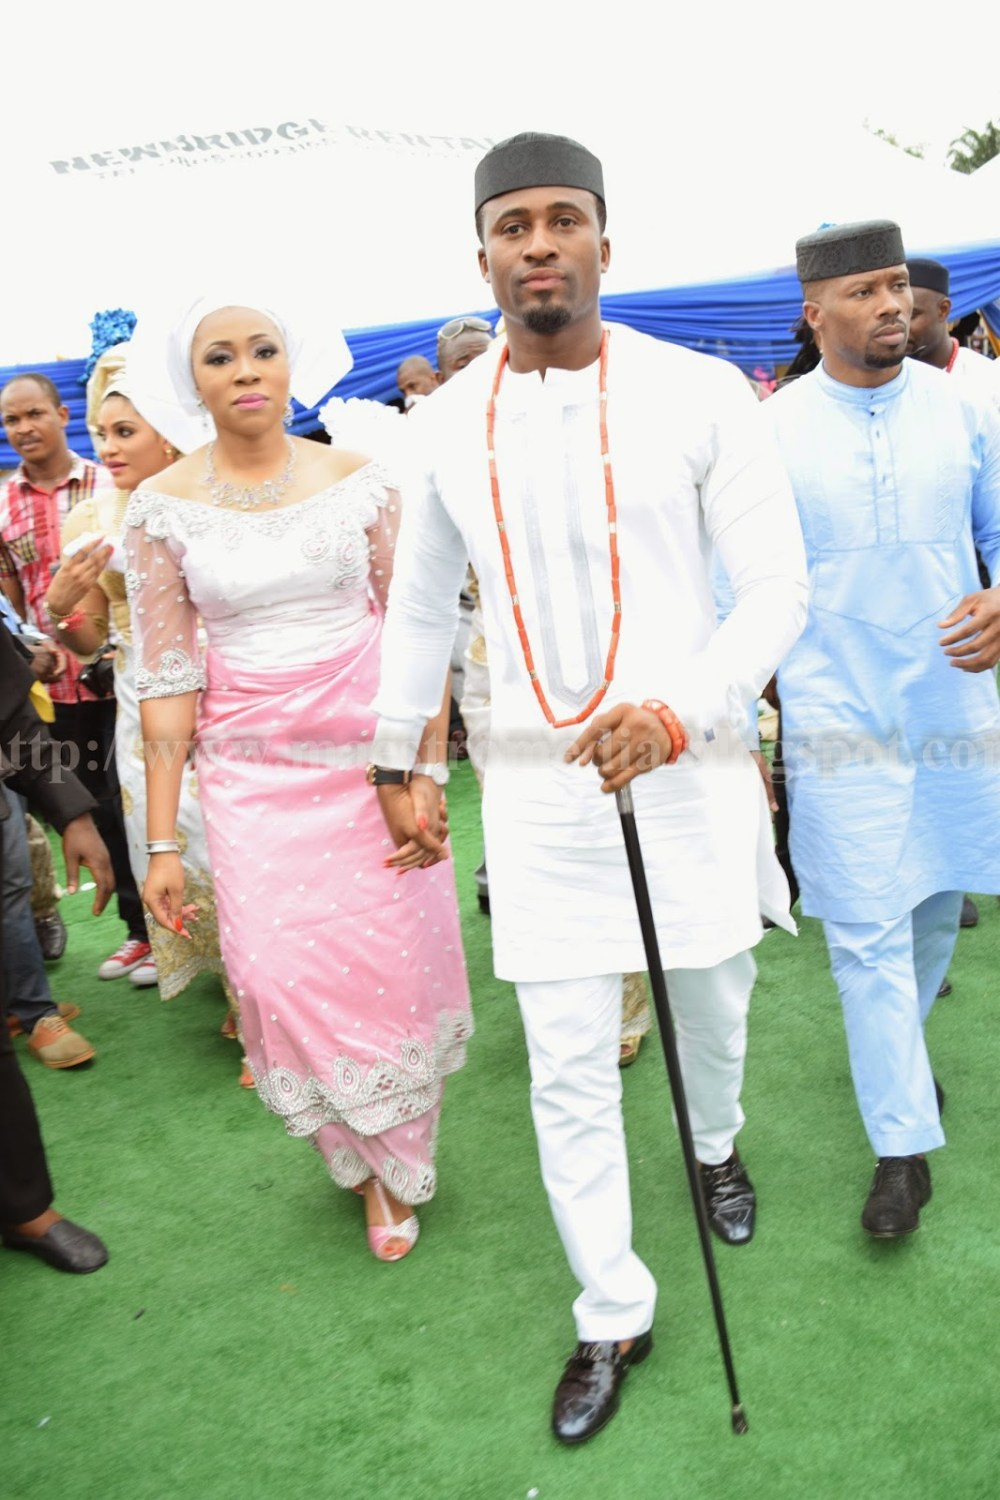 White traditional outfit, the black cap and red bead makes it look like an igbo attire